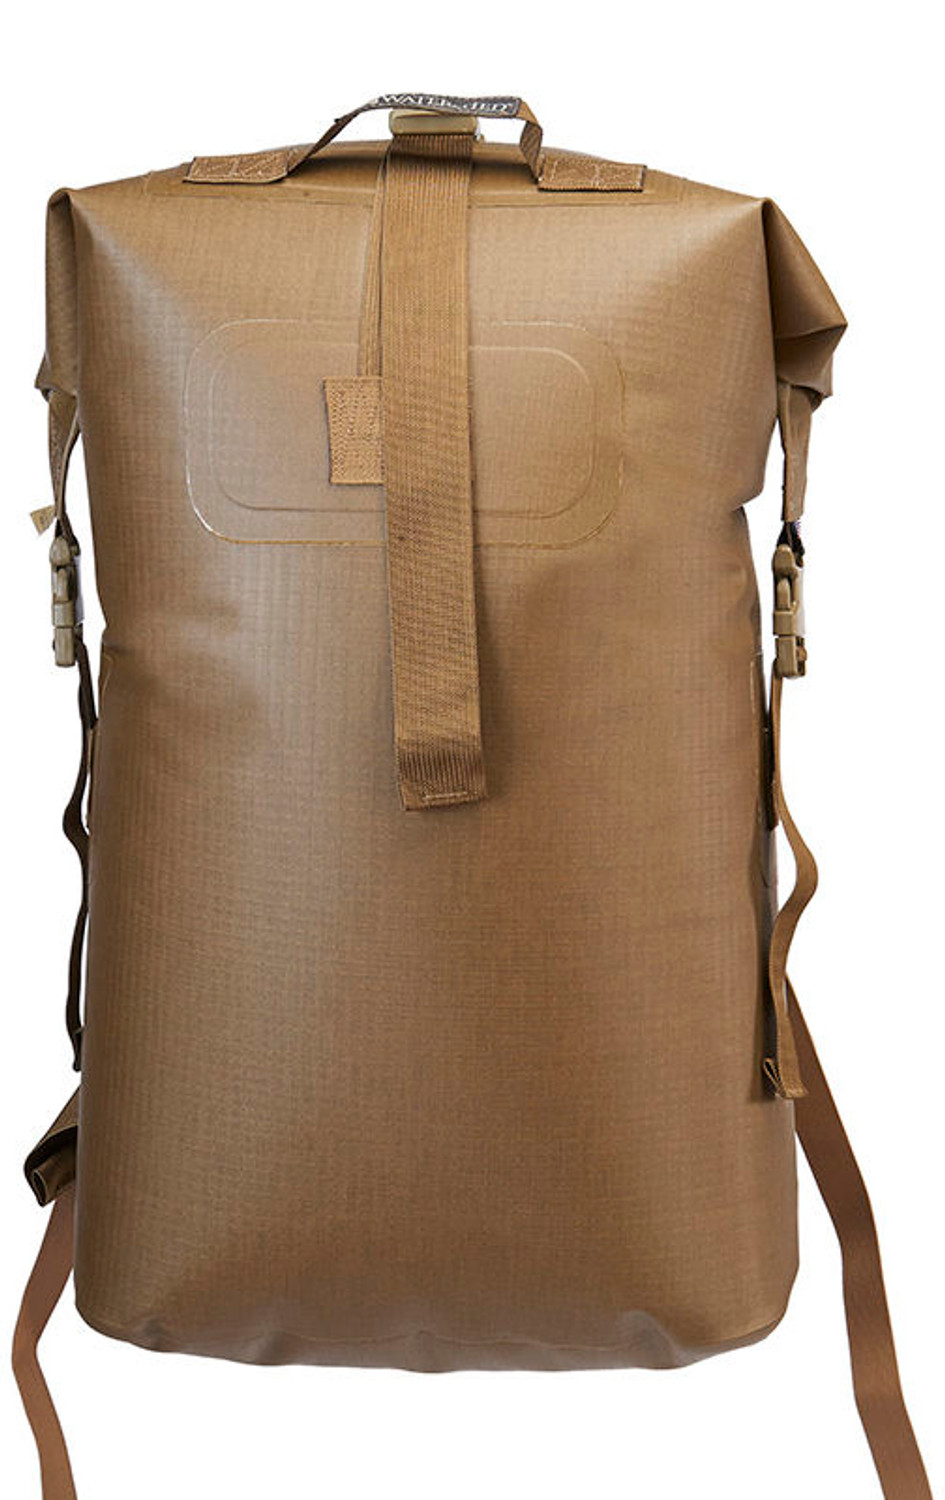 Watershed Animas Dry Backpack - Coyote